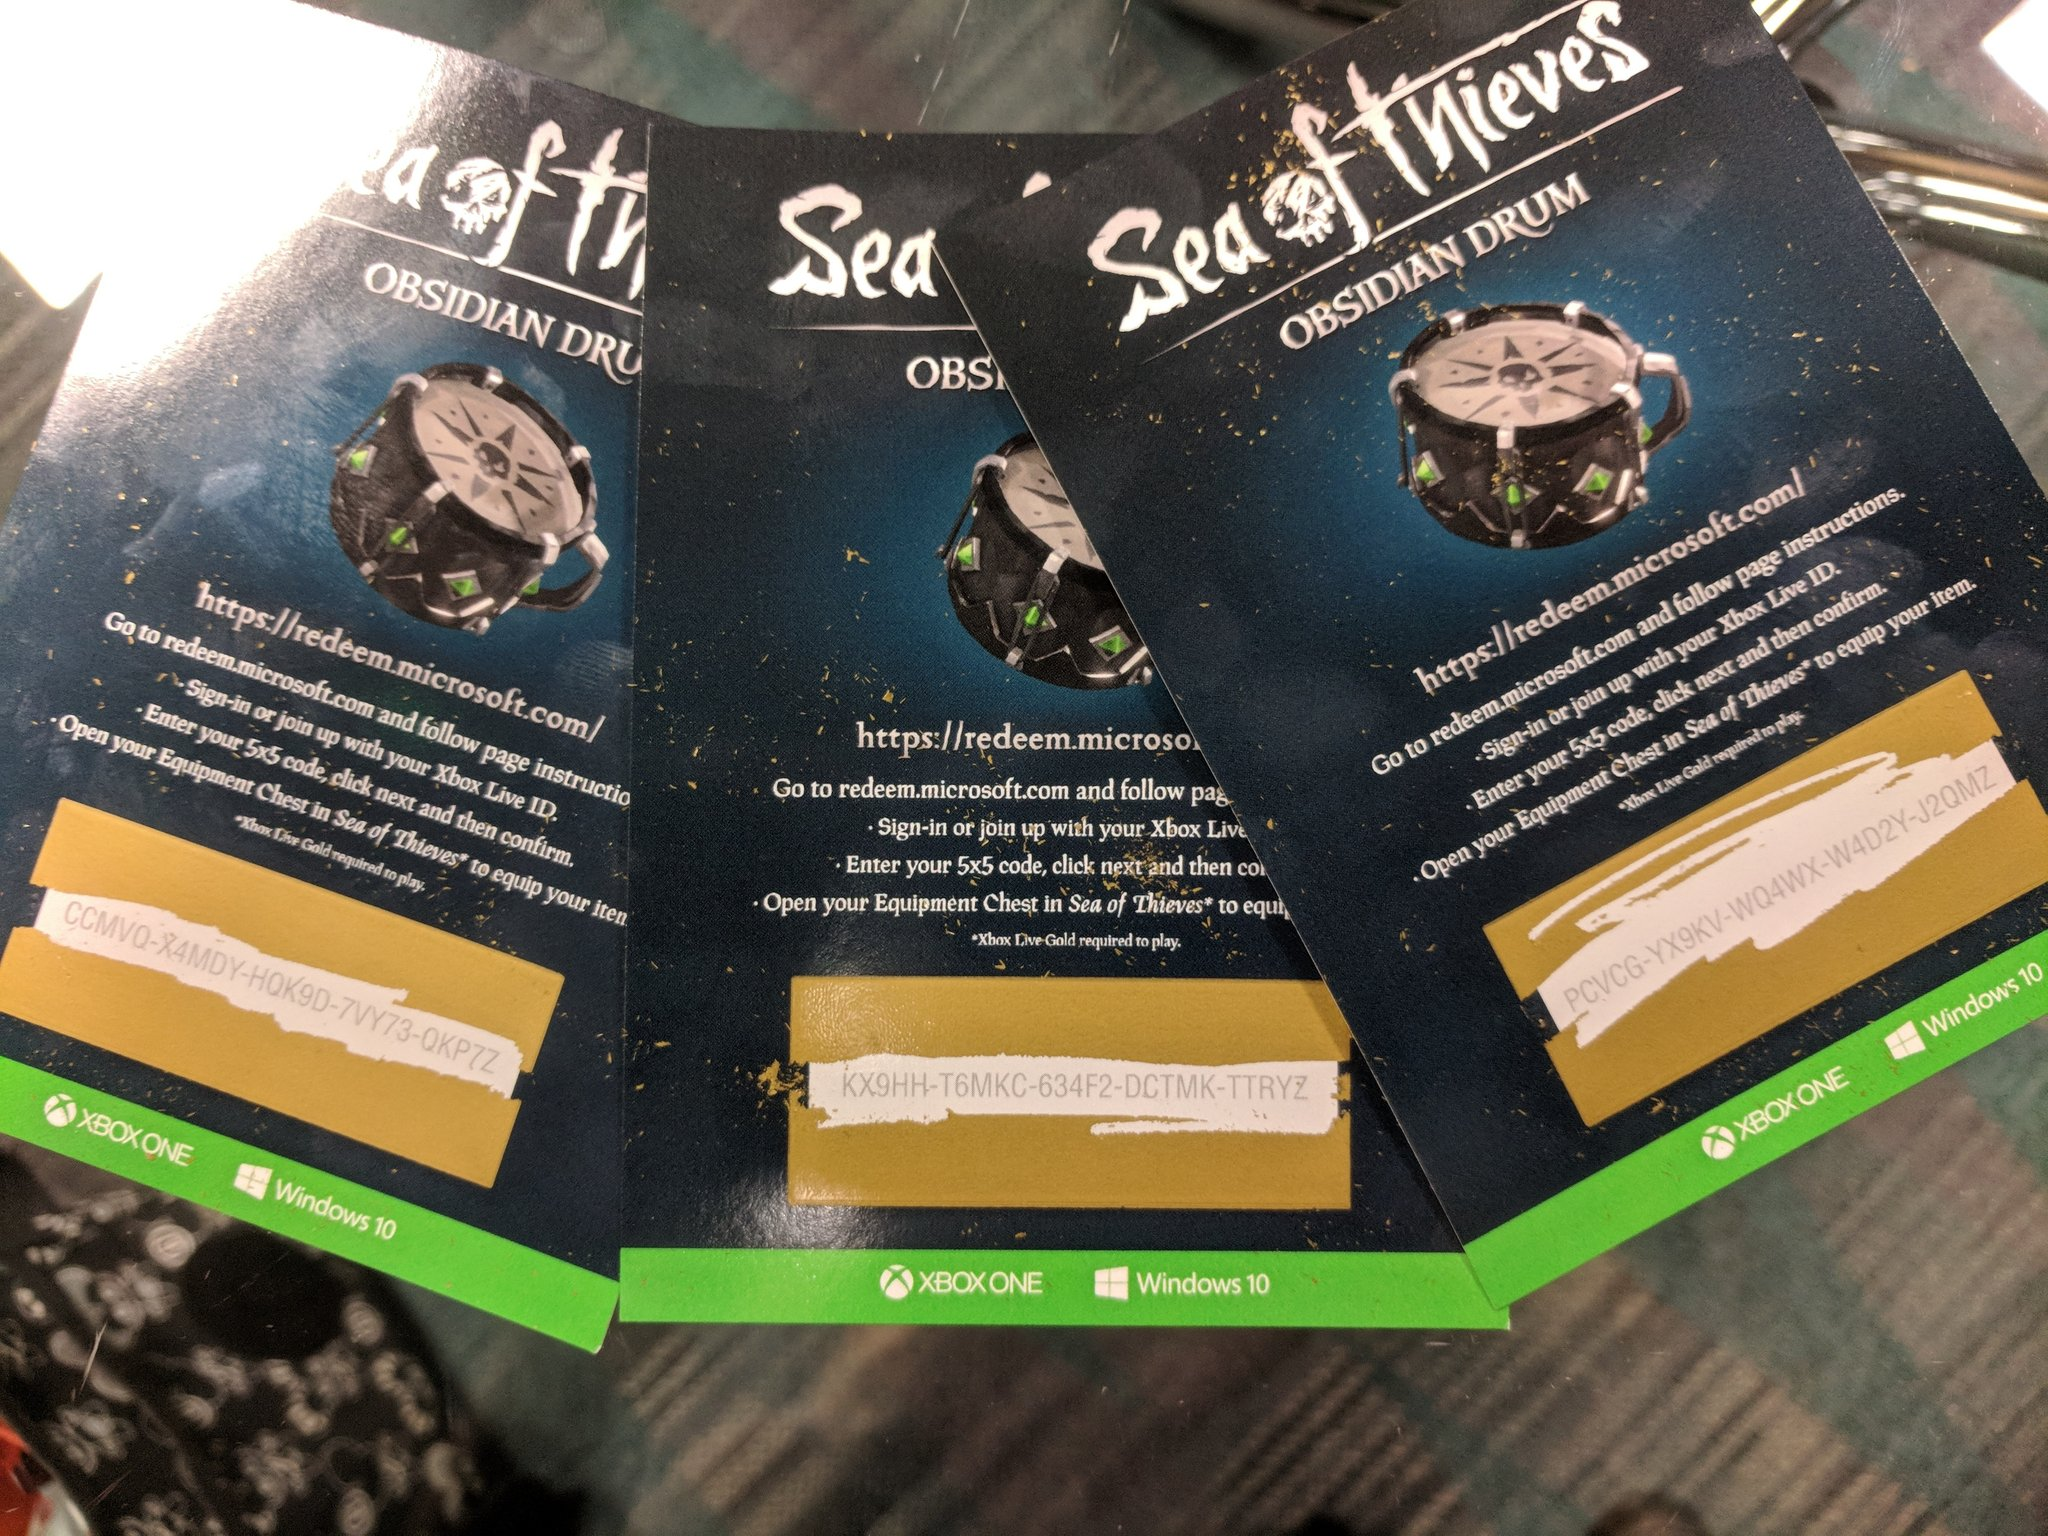 Obsidian Drum codes at E3 : Seaofthieves